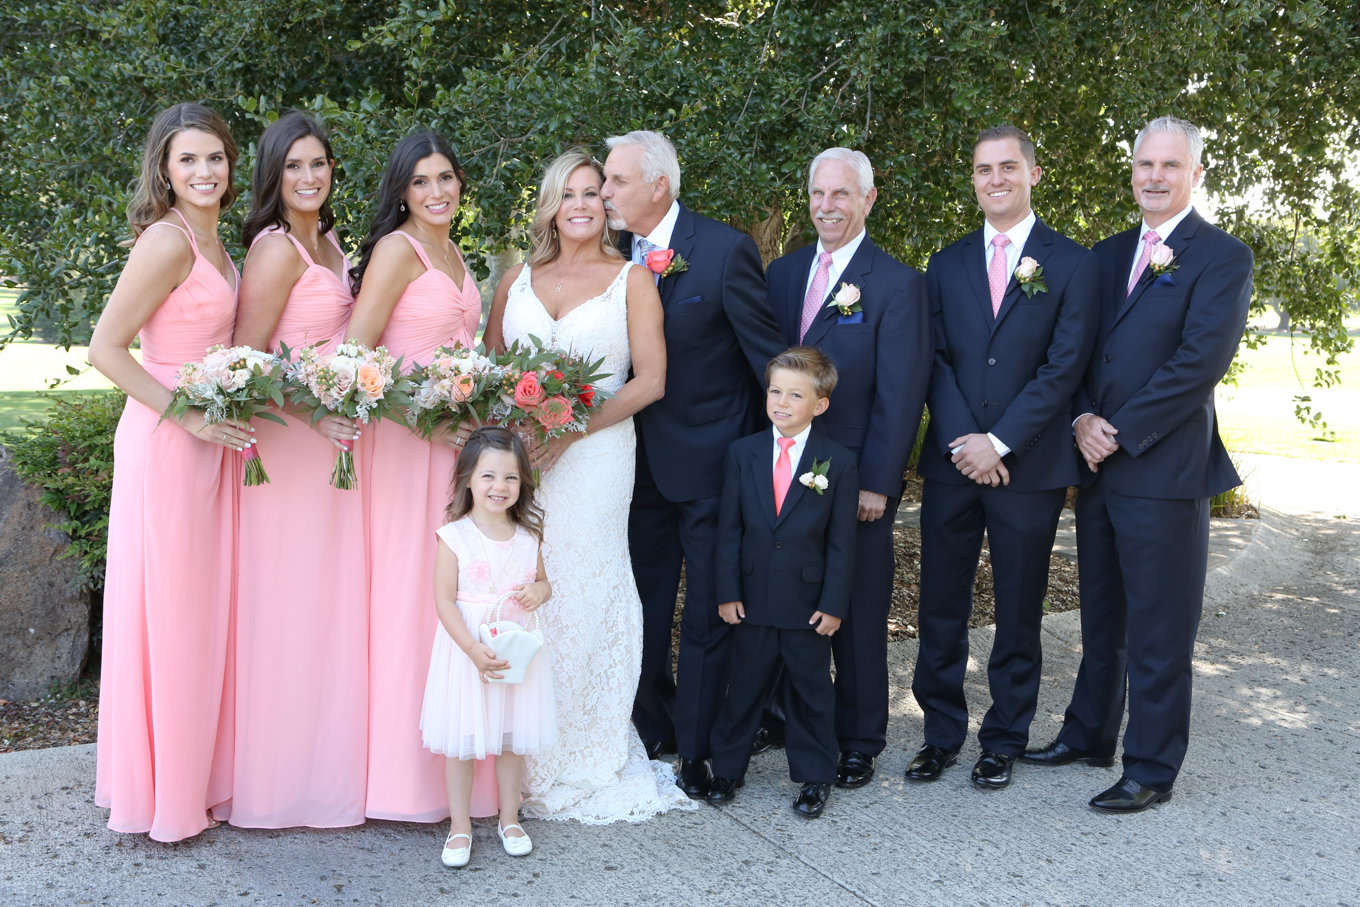 Gorgeous bridal party at Los Altos Golf and Country Club - such a beautiful Summer wedding!